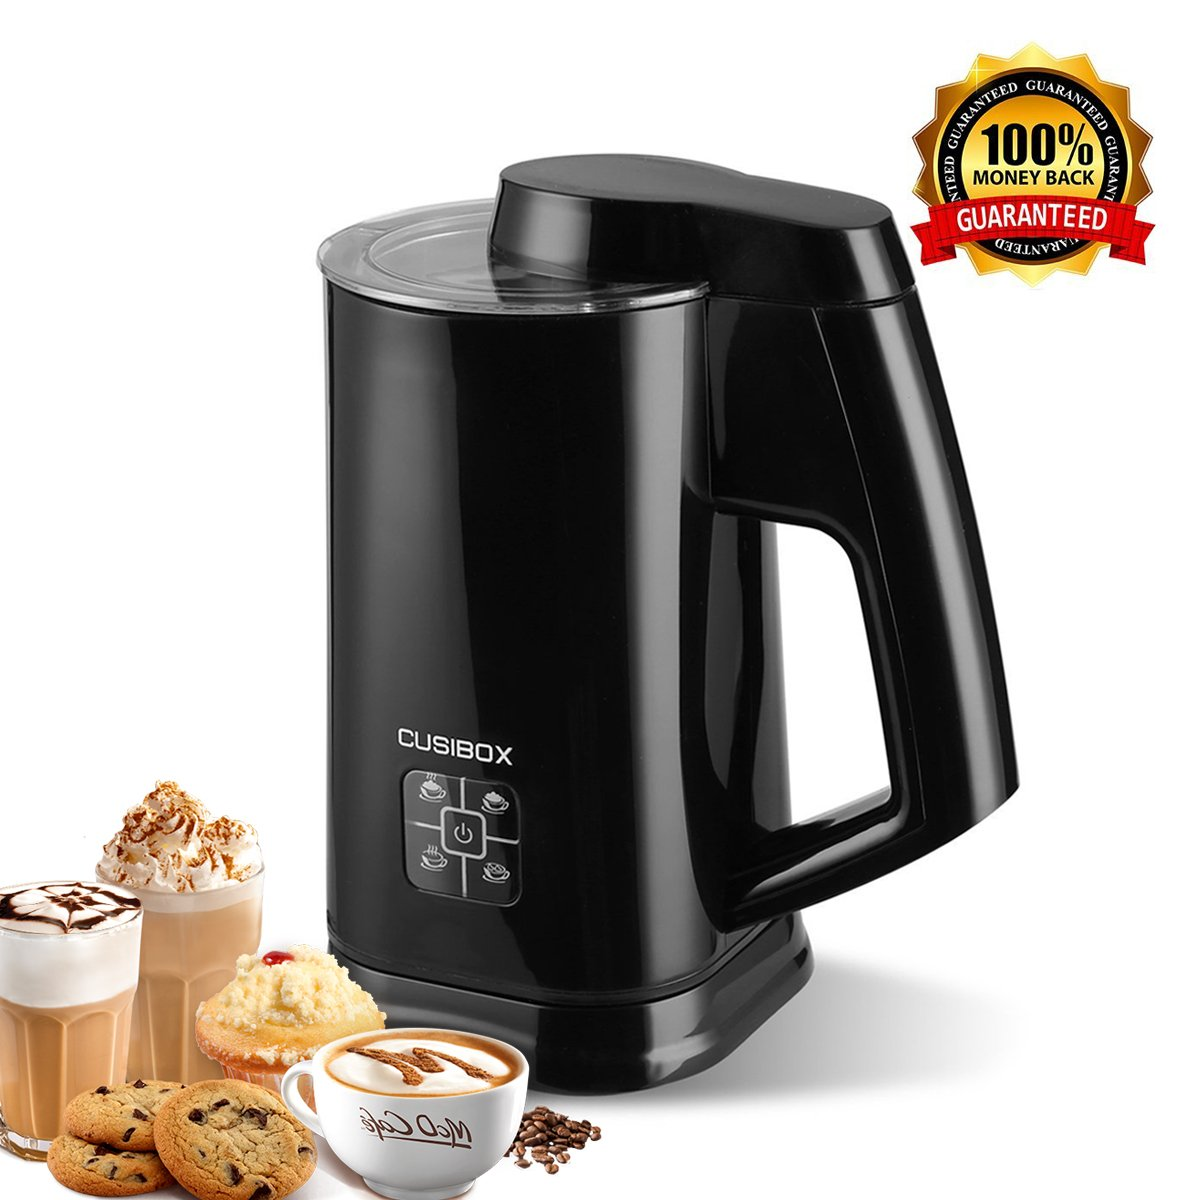 Automatic Electric Milk Frother,CUSIBOX Stainless Steel Electric Milk Steamer,Hot or Cold Milk with New Foam Density Feature Heater and Cappuccino Maker